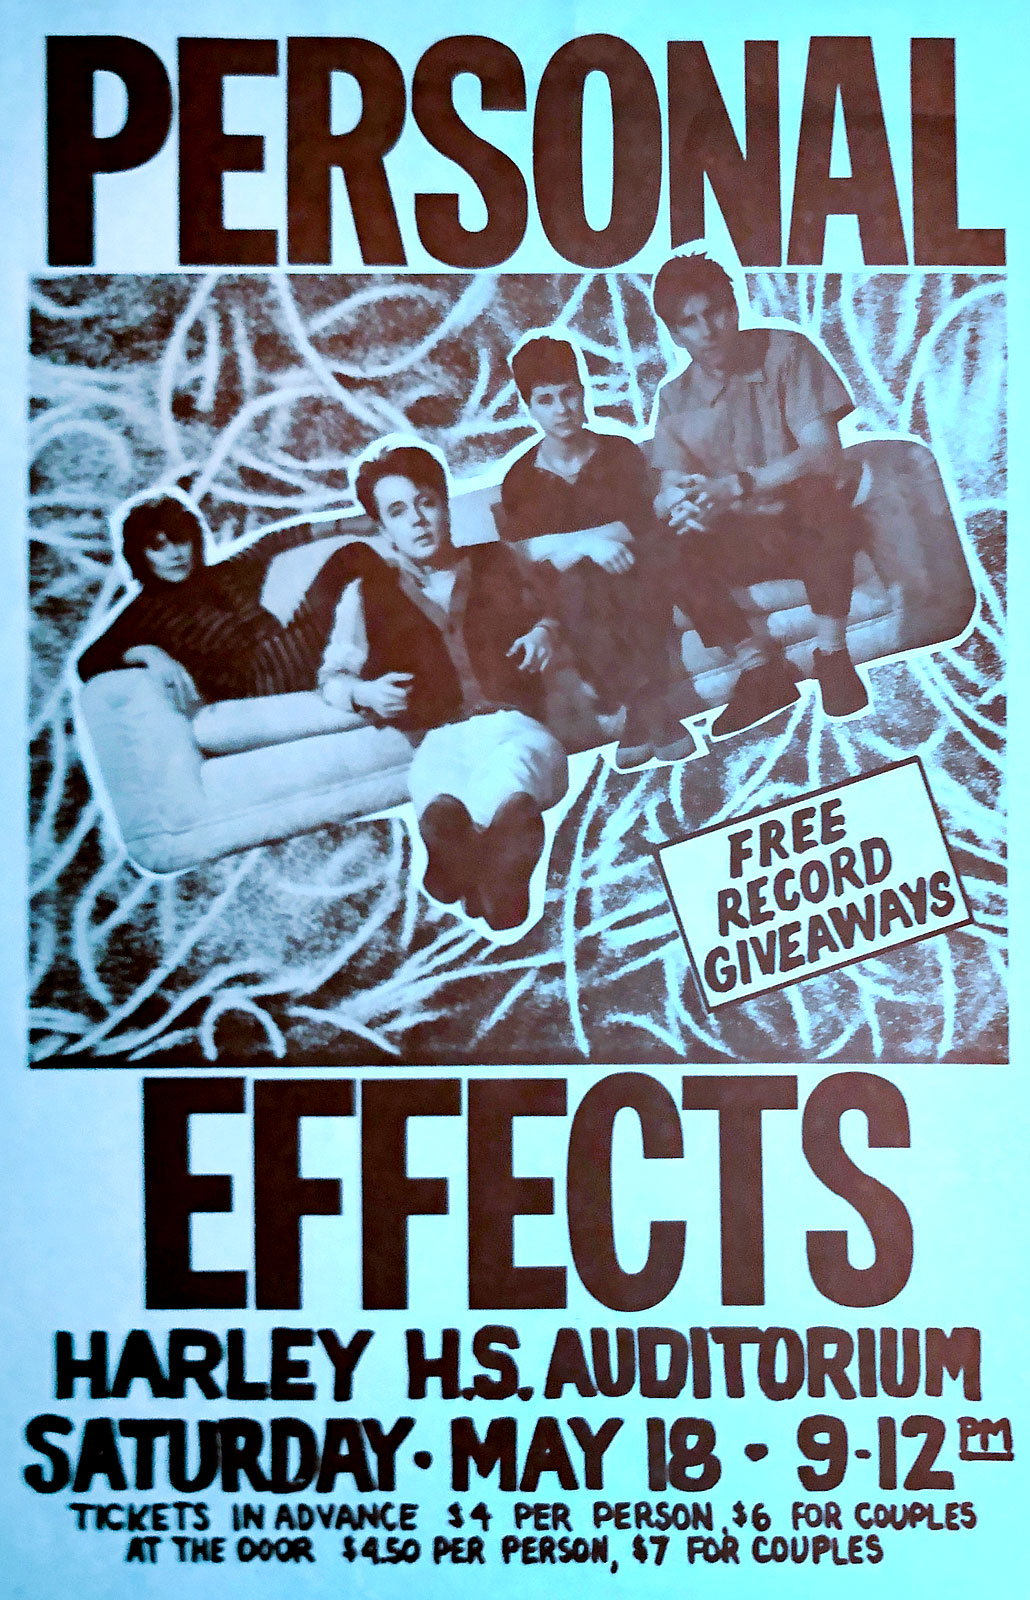 Poster for Personal Effects at Harley High School in Rochester, New York on 05.18.1985. Robin Mills Goldblatt, Personal Effects bass player, was a senior at Harley at the time.